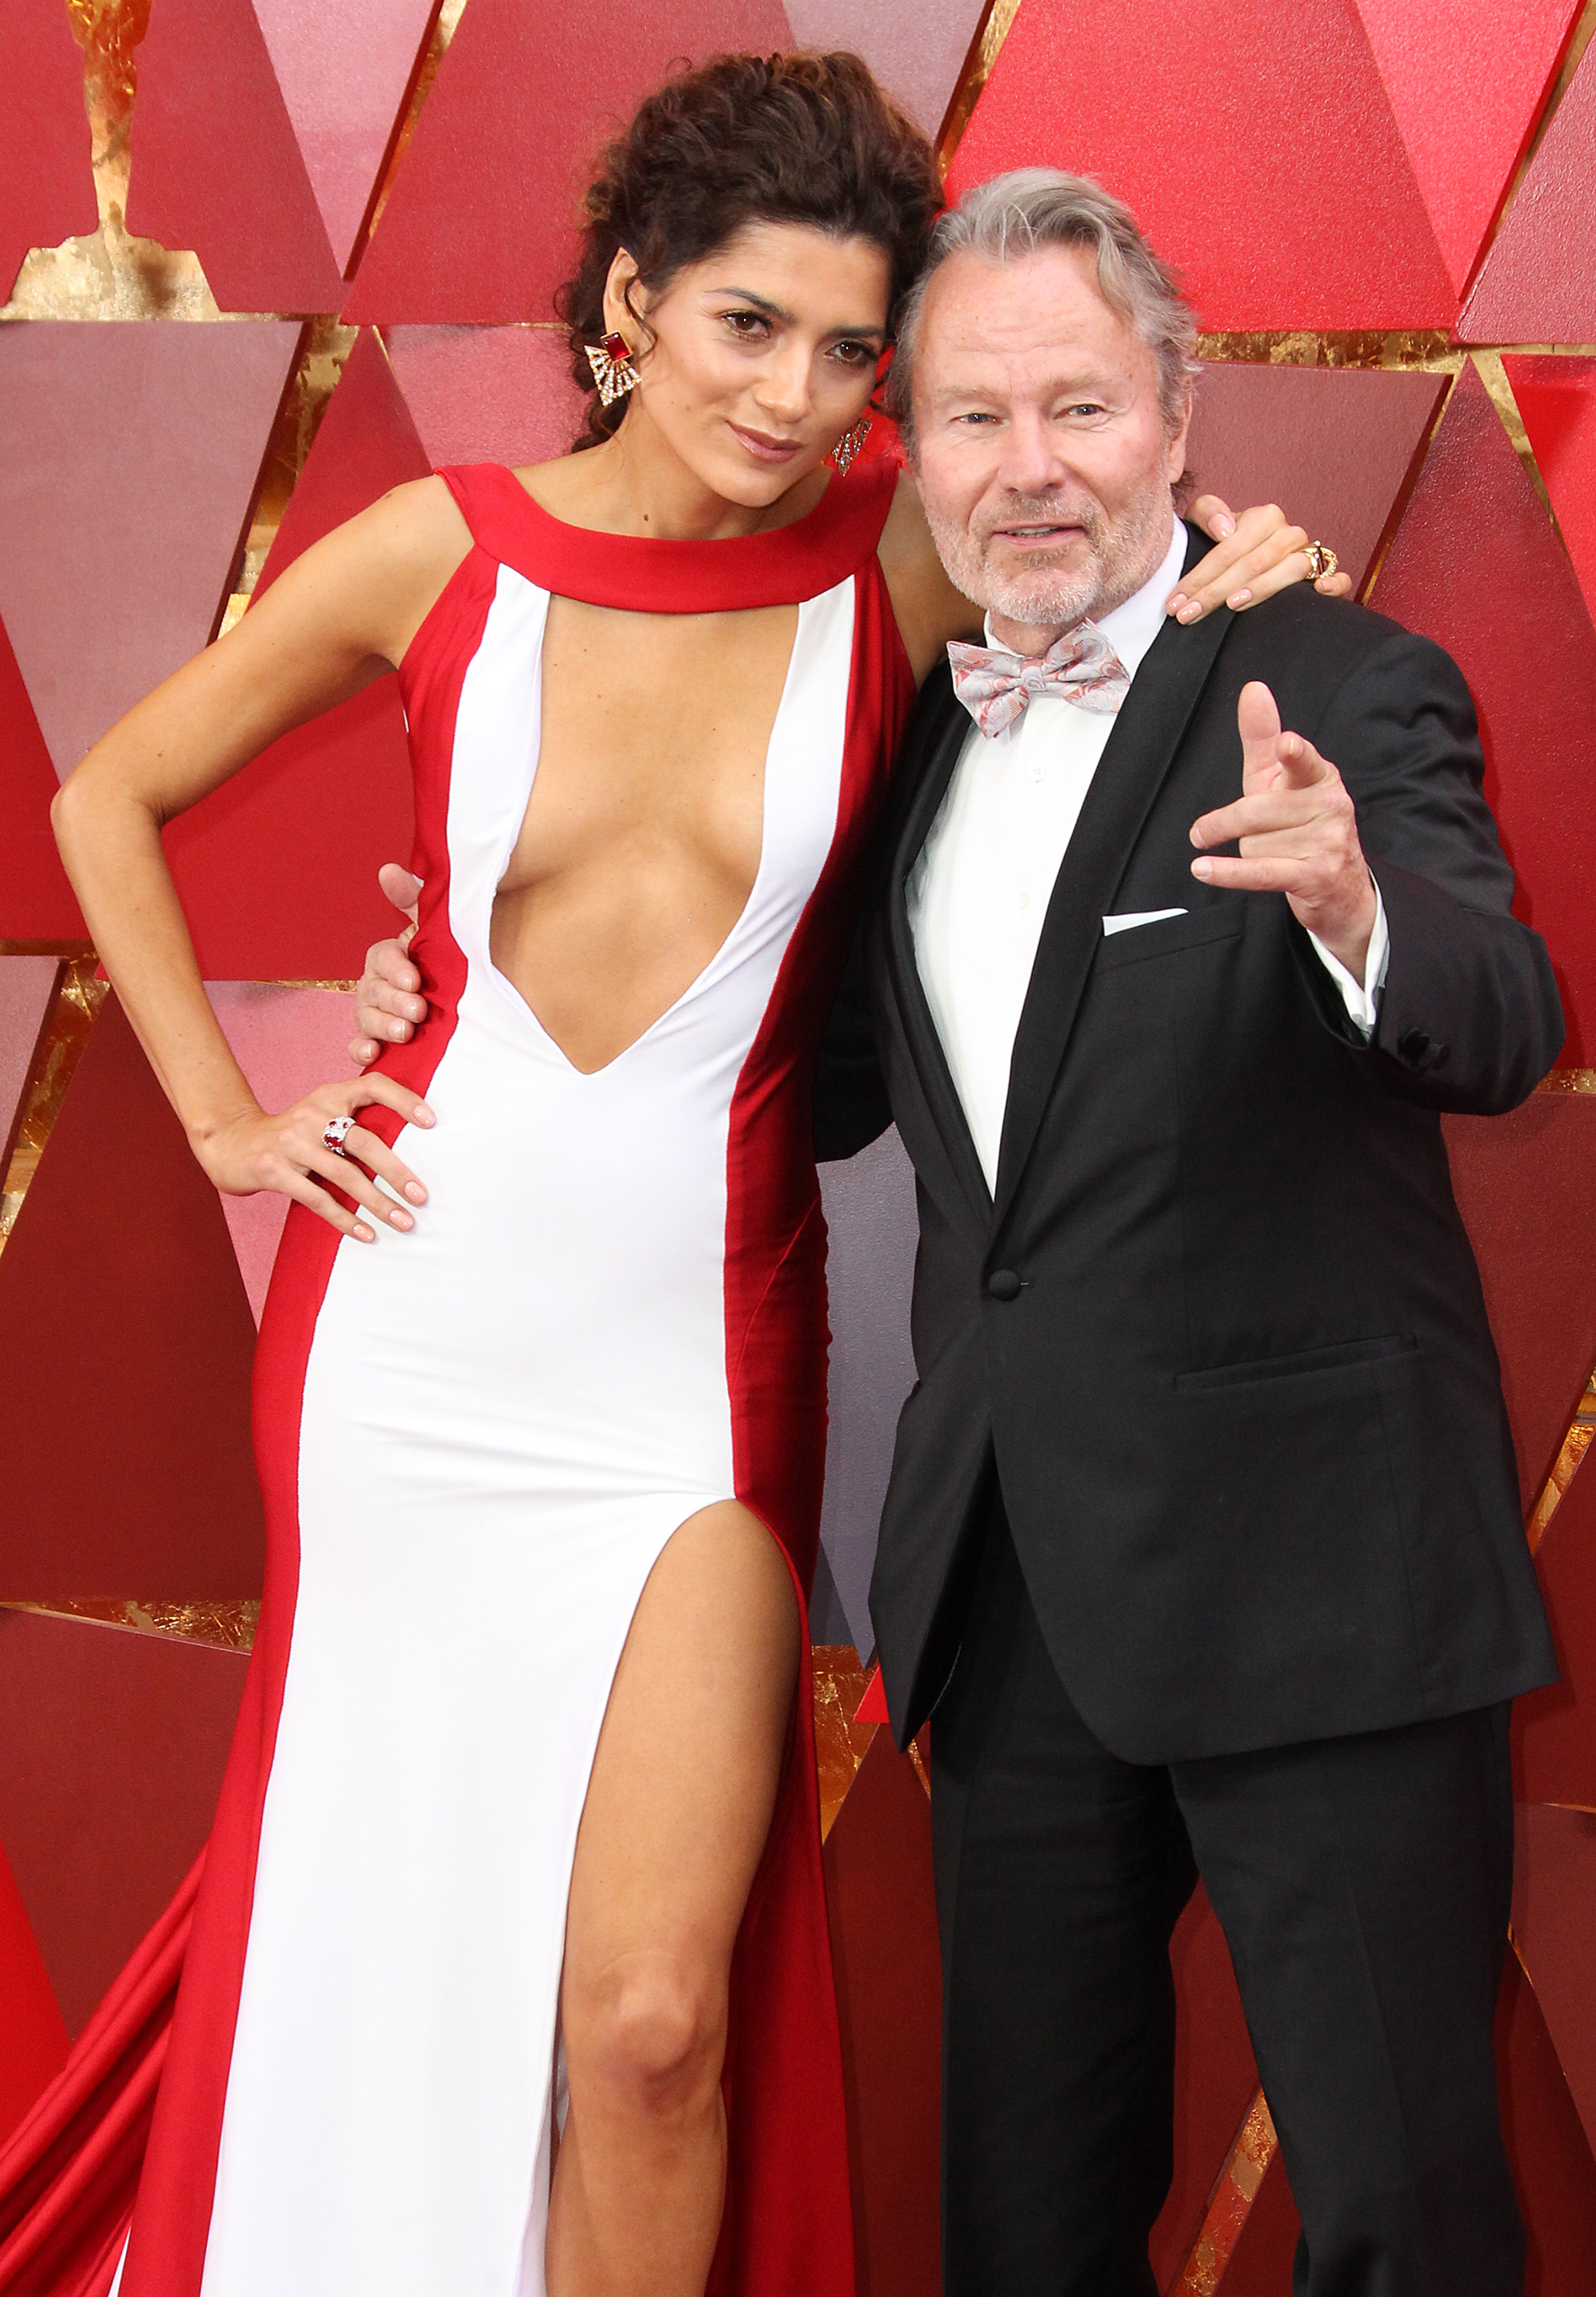 Blanca Blanco and John Savage{&nbsp;}arrives at the 90th Annual Academy Awards (Oscars) held at the Dolby Theater in Hollywood, California. (Image: Adriana M. Barraza/WENN.com){&nbsp;}<p></p>